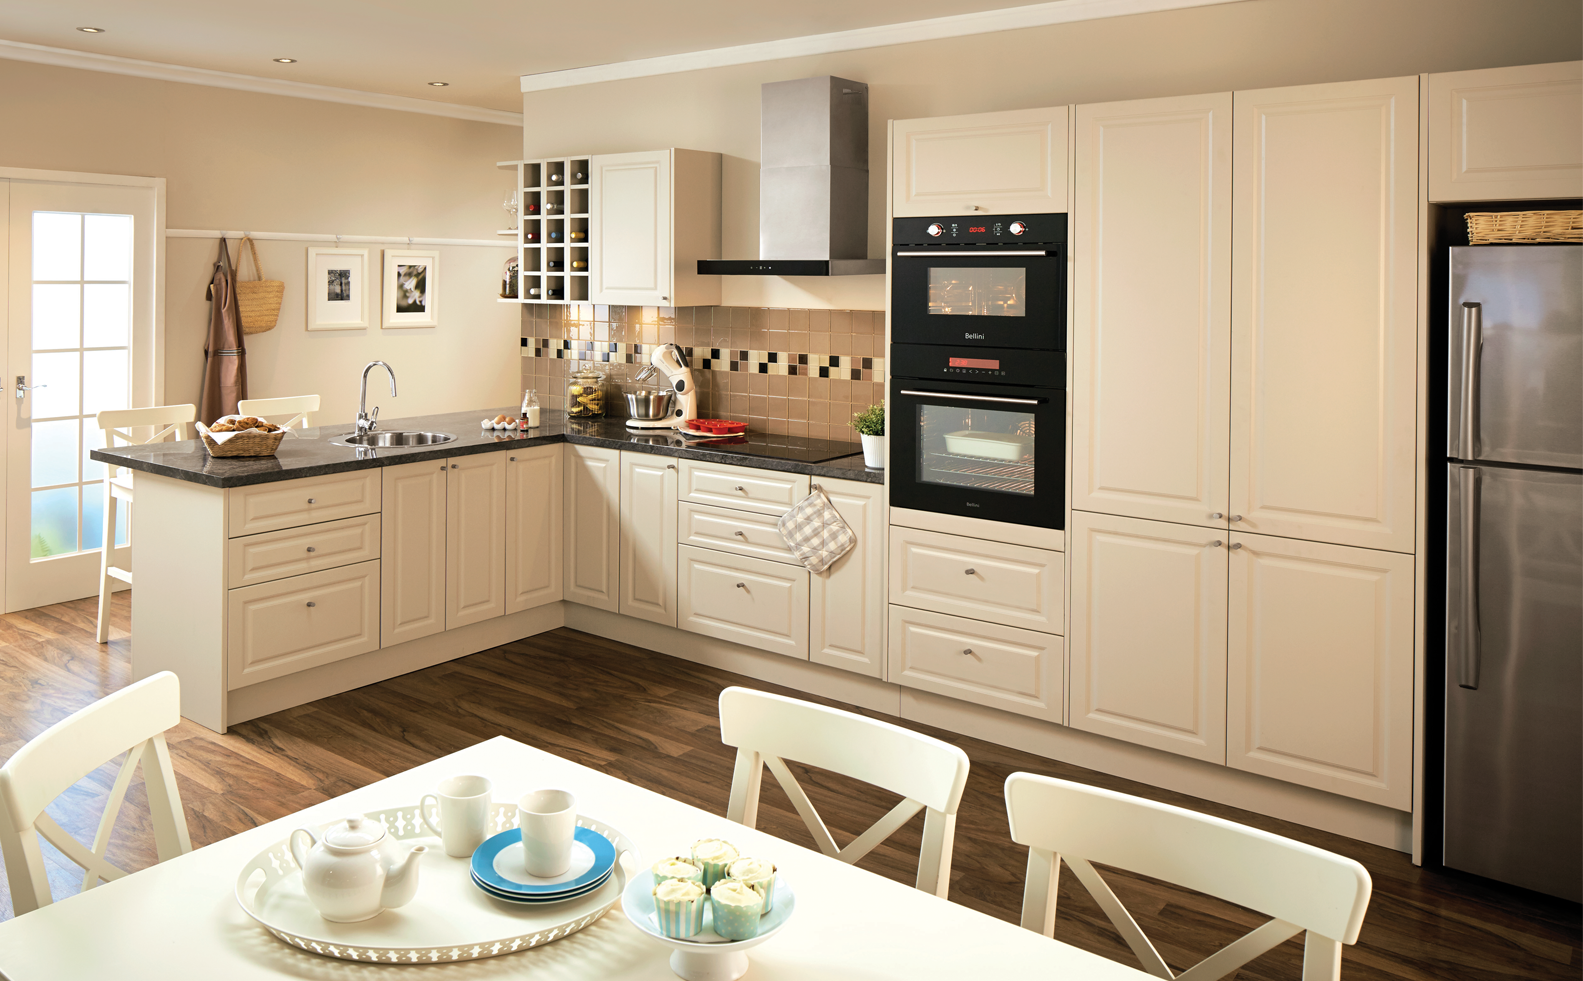 The Classic Kitchen Kitchen Inspiration package at